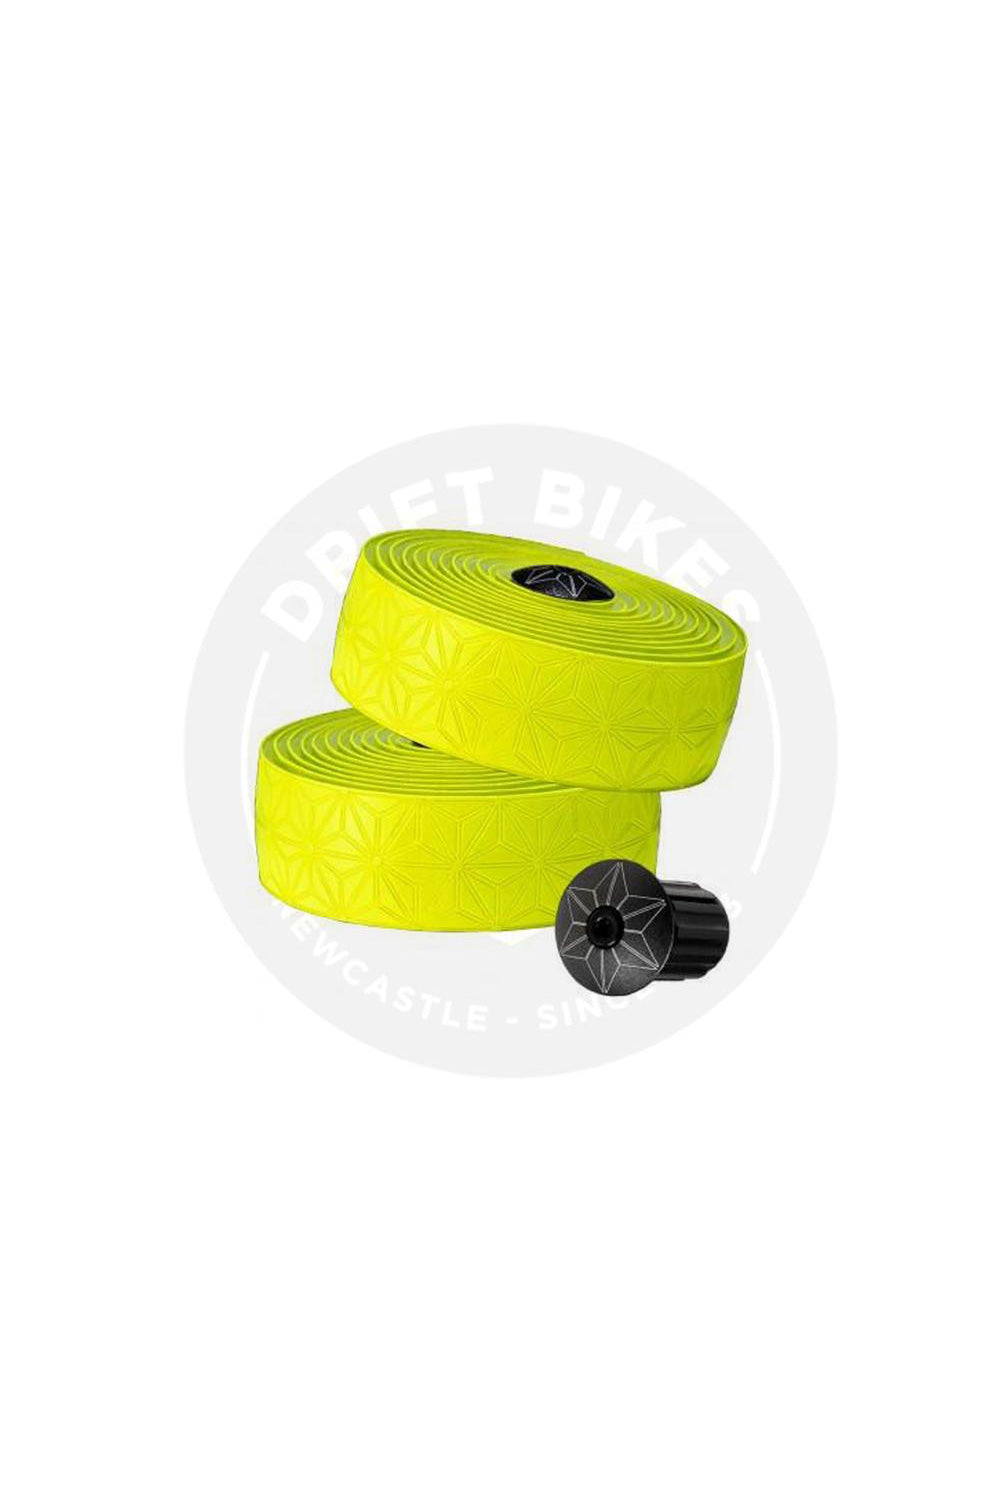 Supacaz Handlebar Bike Tape Super Sticky Kush Neon Yellow